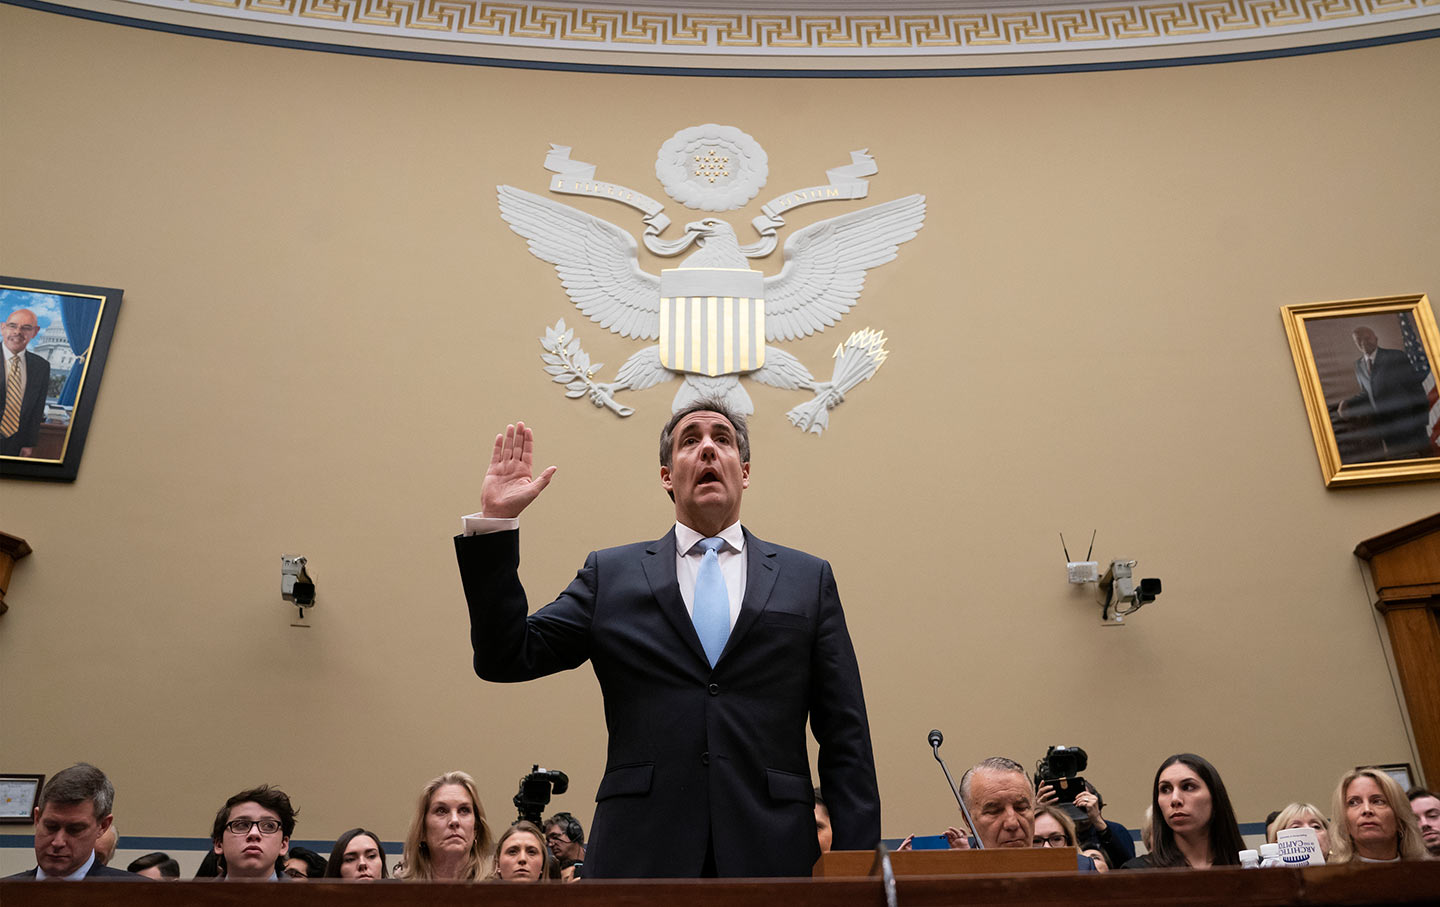 Michael Cohen being sworn in to testify before Congress